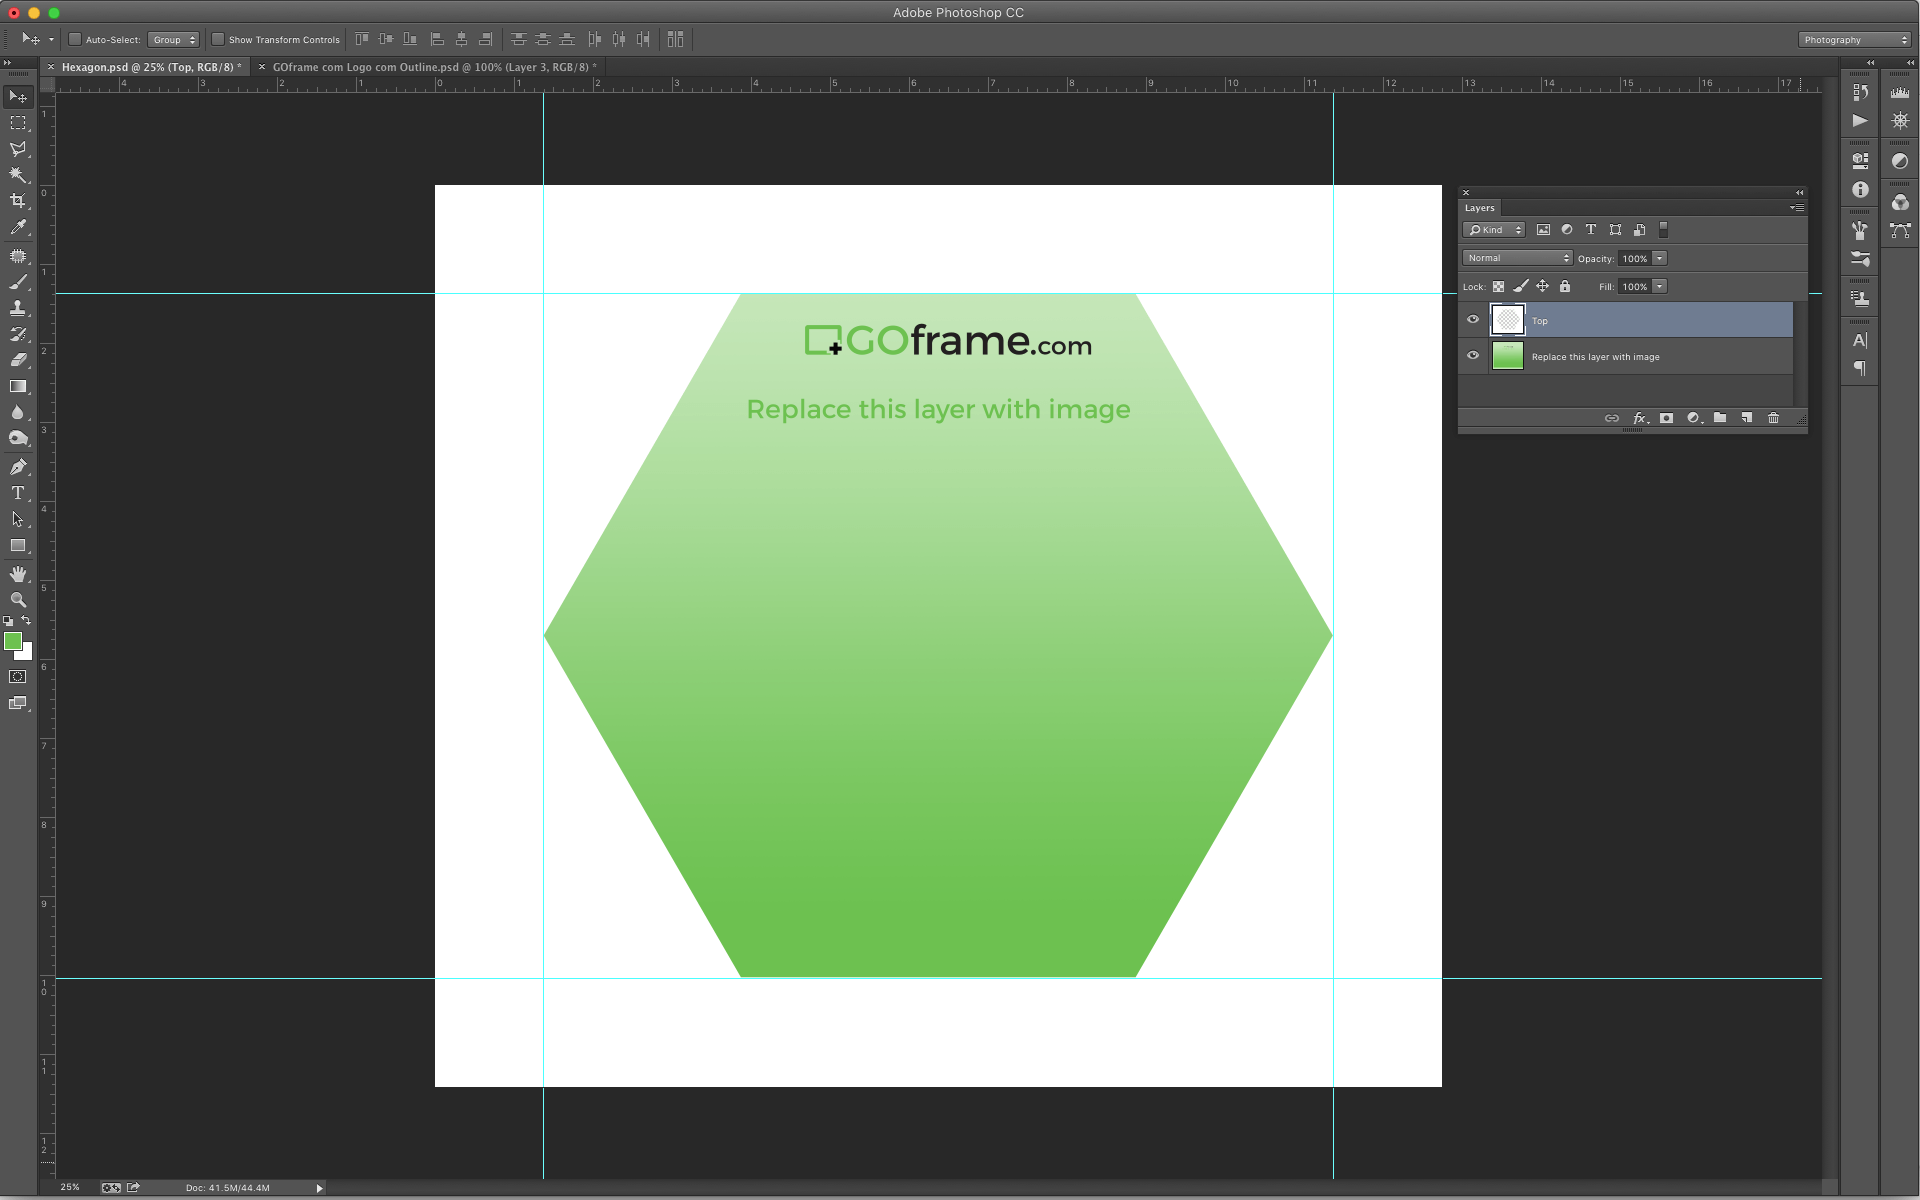 How To Make A Perfect Hexagon In Photoshop